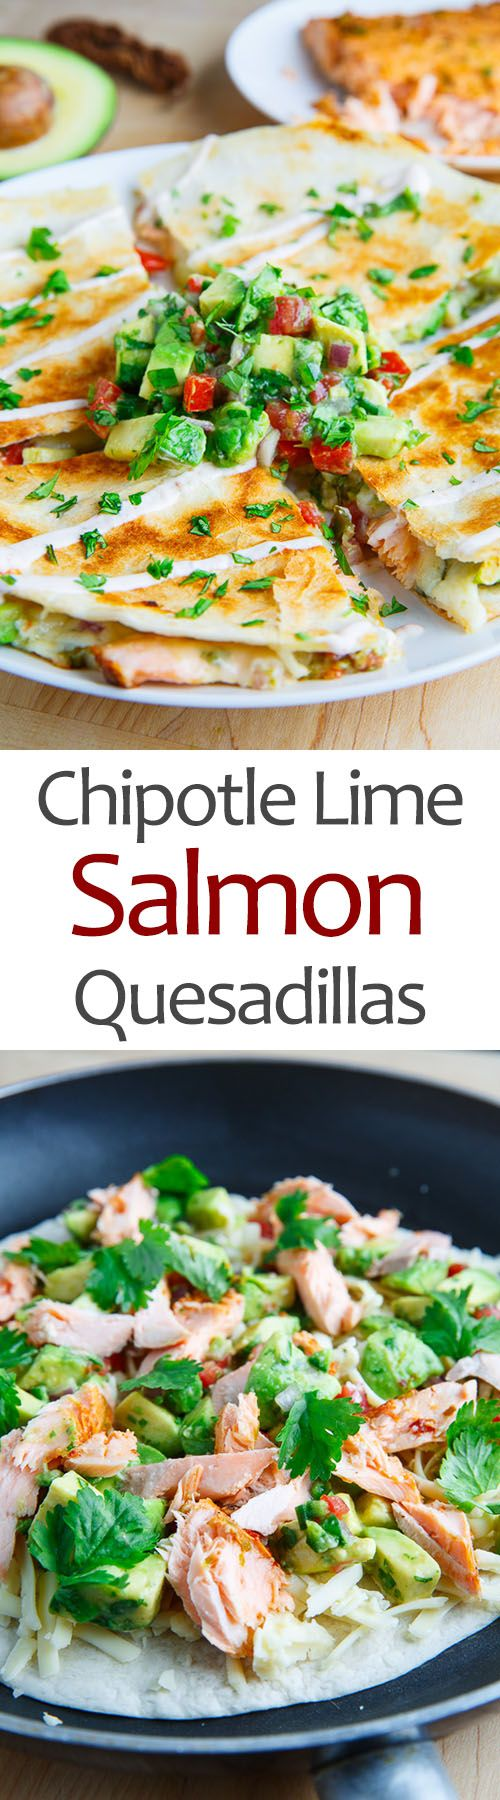 Best 10+ Shrimp Quesadilla ideas on Pinterest